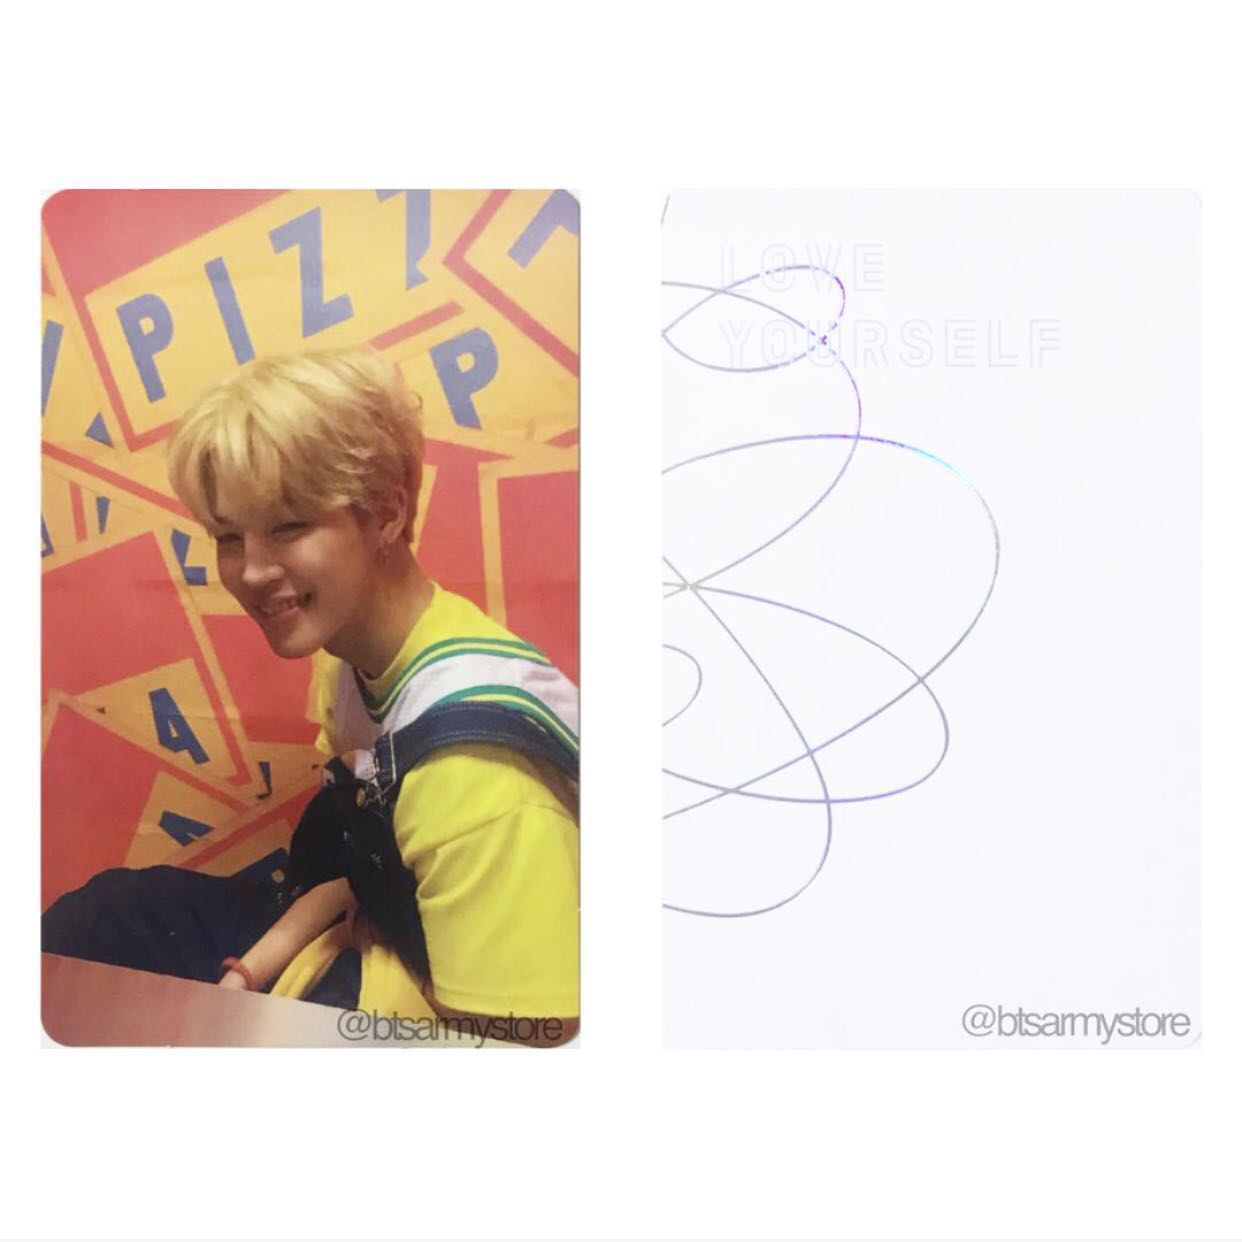 instock bts love yourself her version e jimin photocard 1527593967 a1014a07